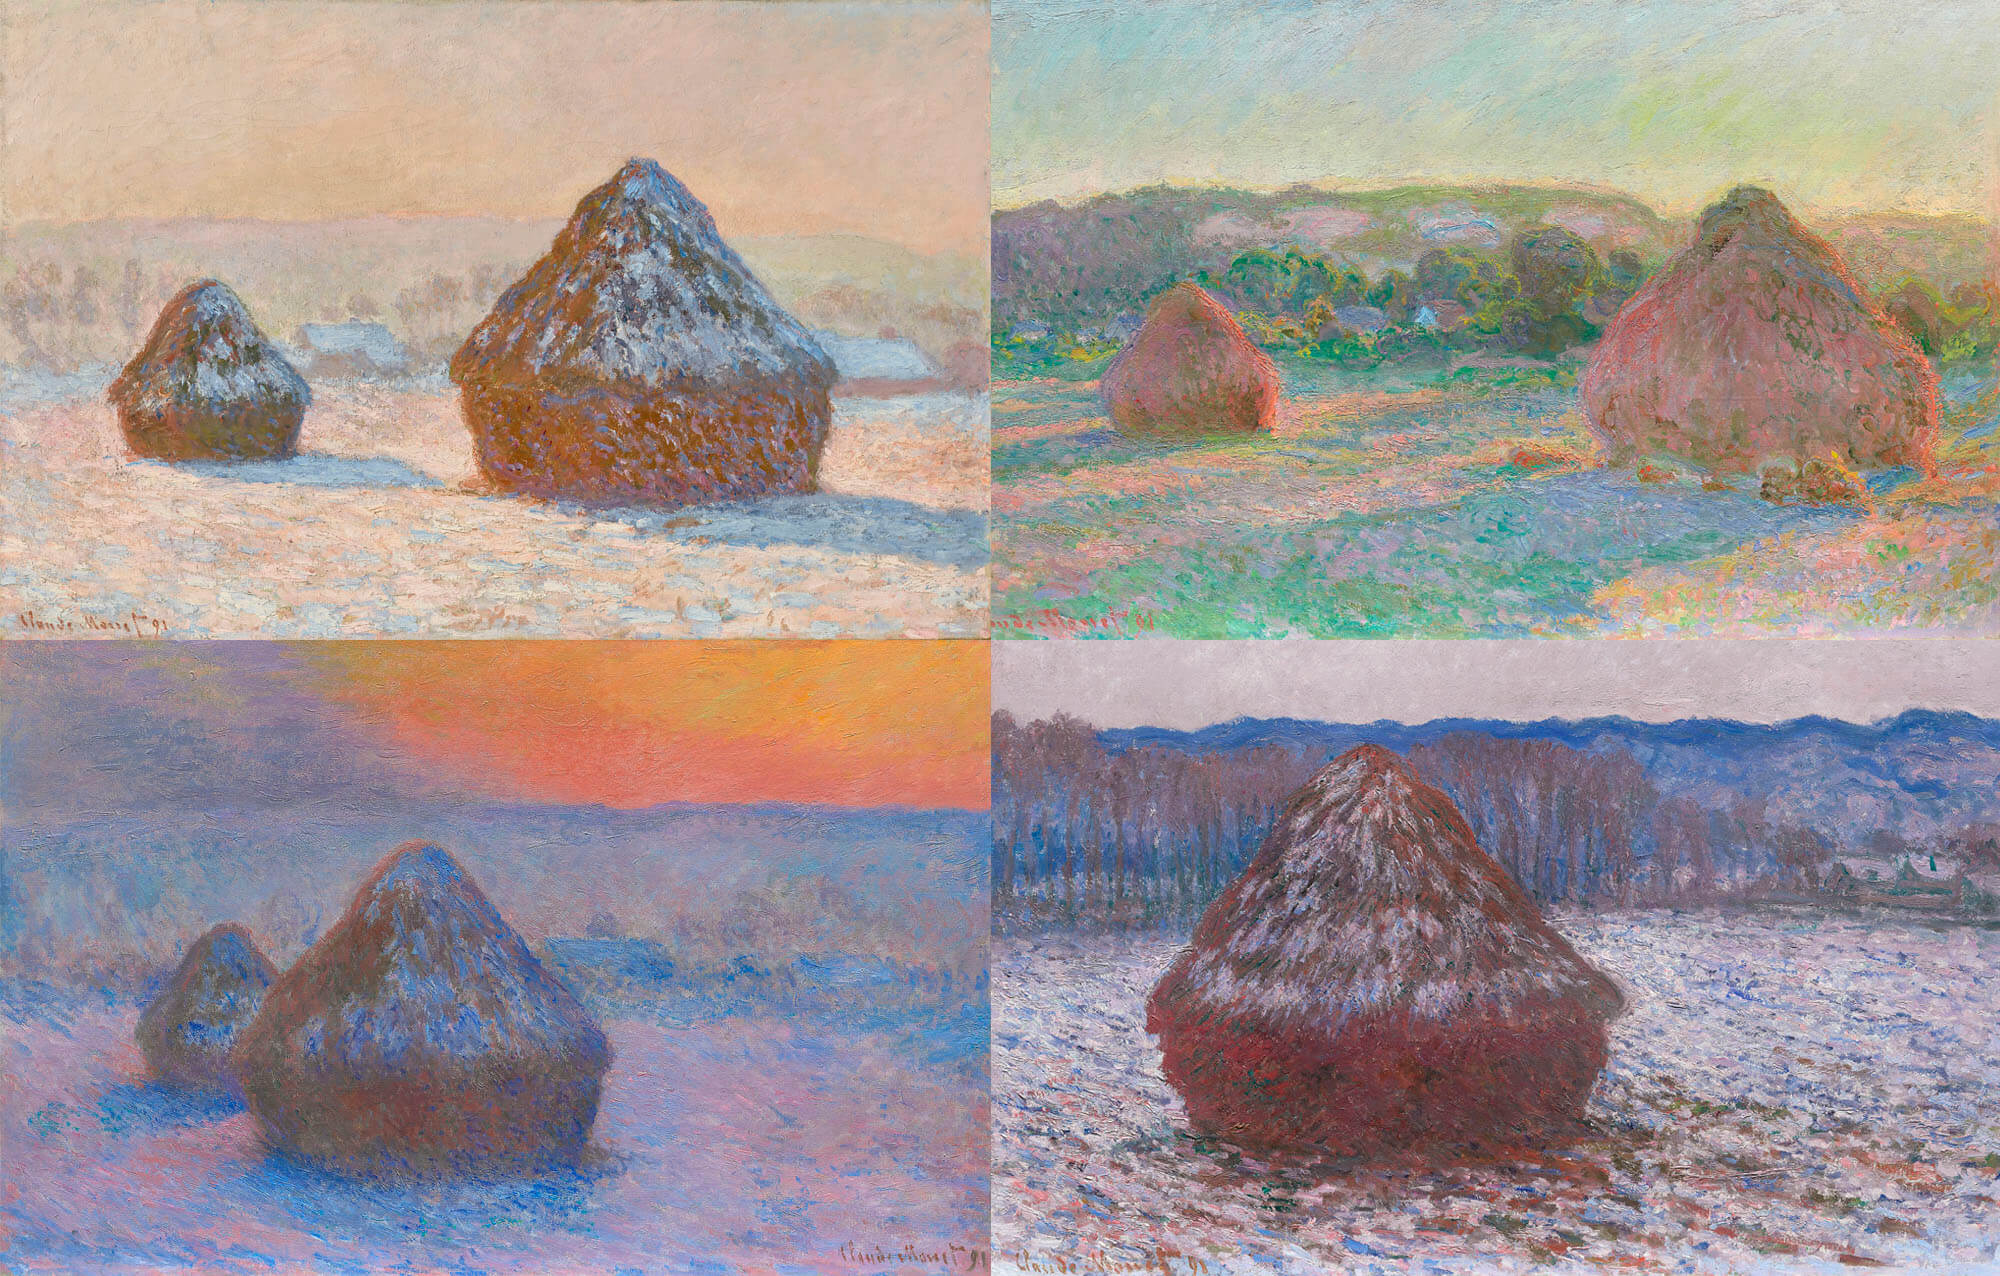 Four of Monet's paintings of stacks of wheat, three in snow, one in the sun with green trees.